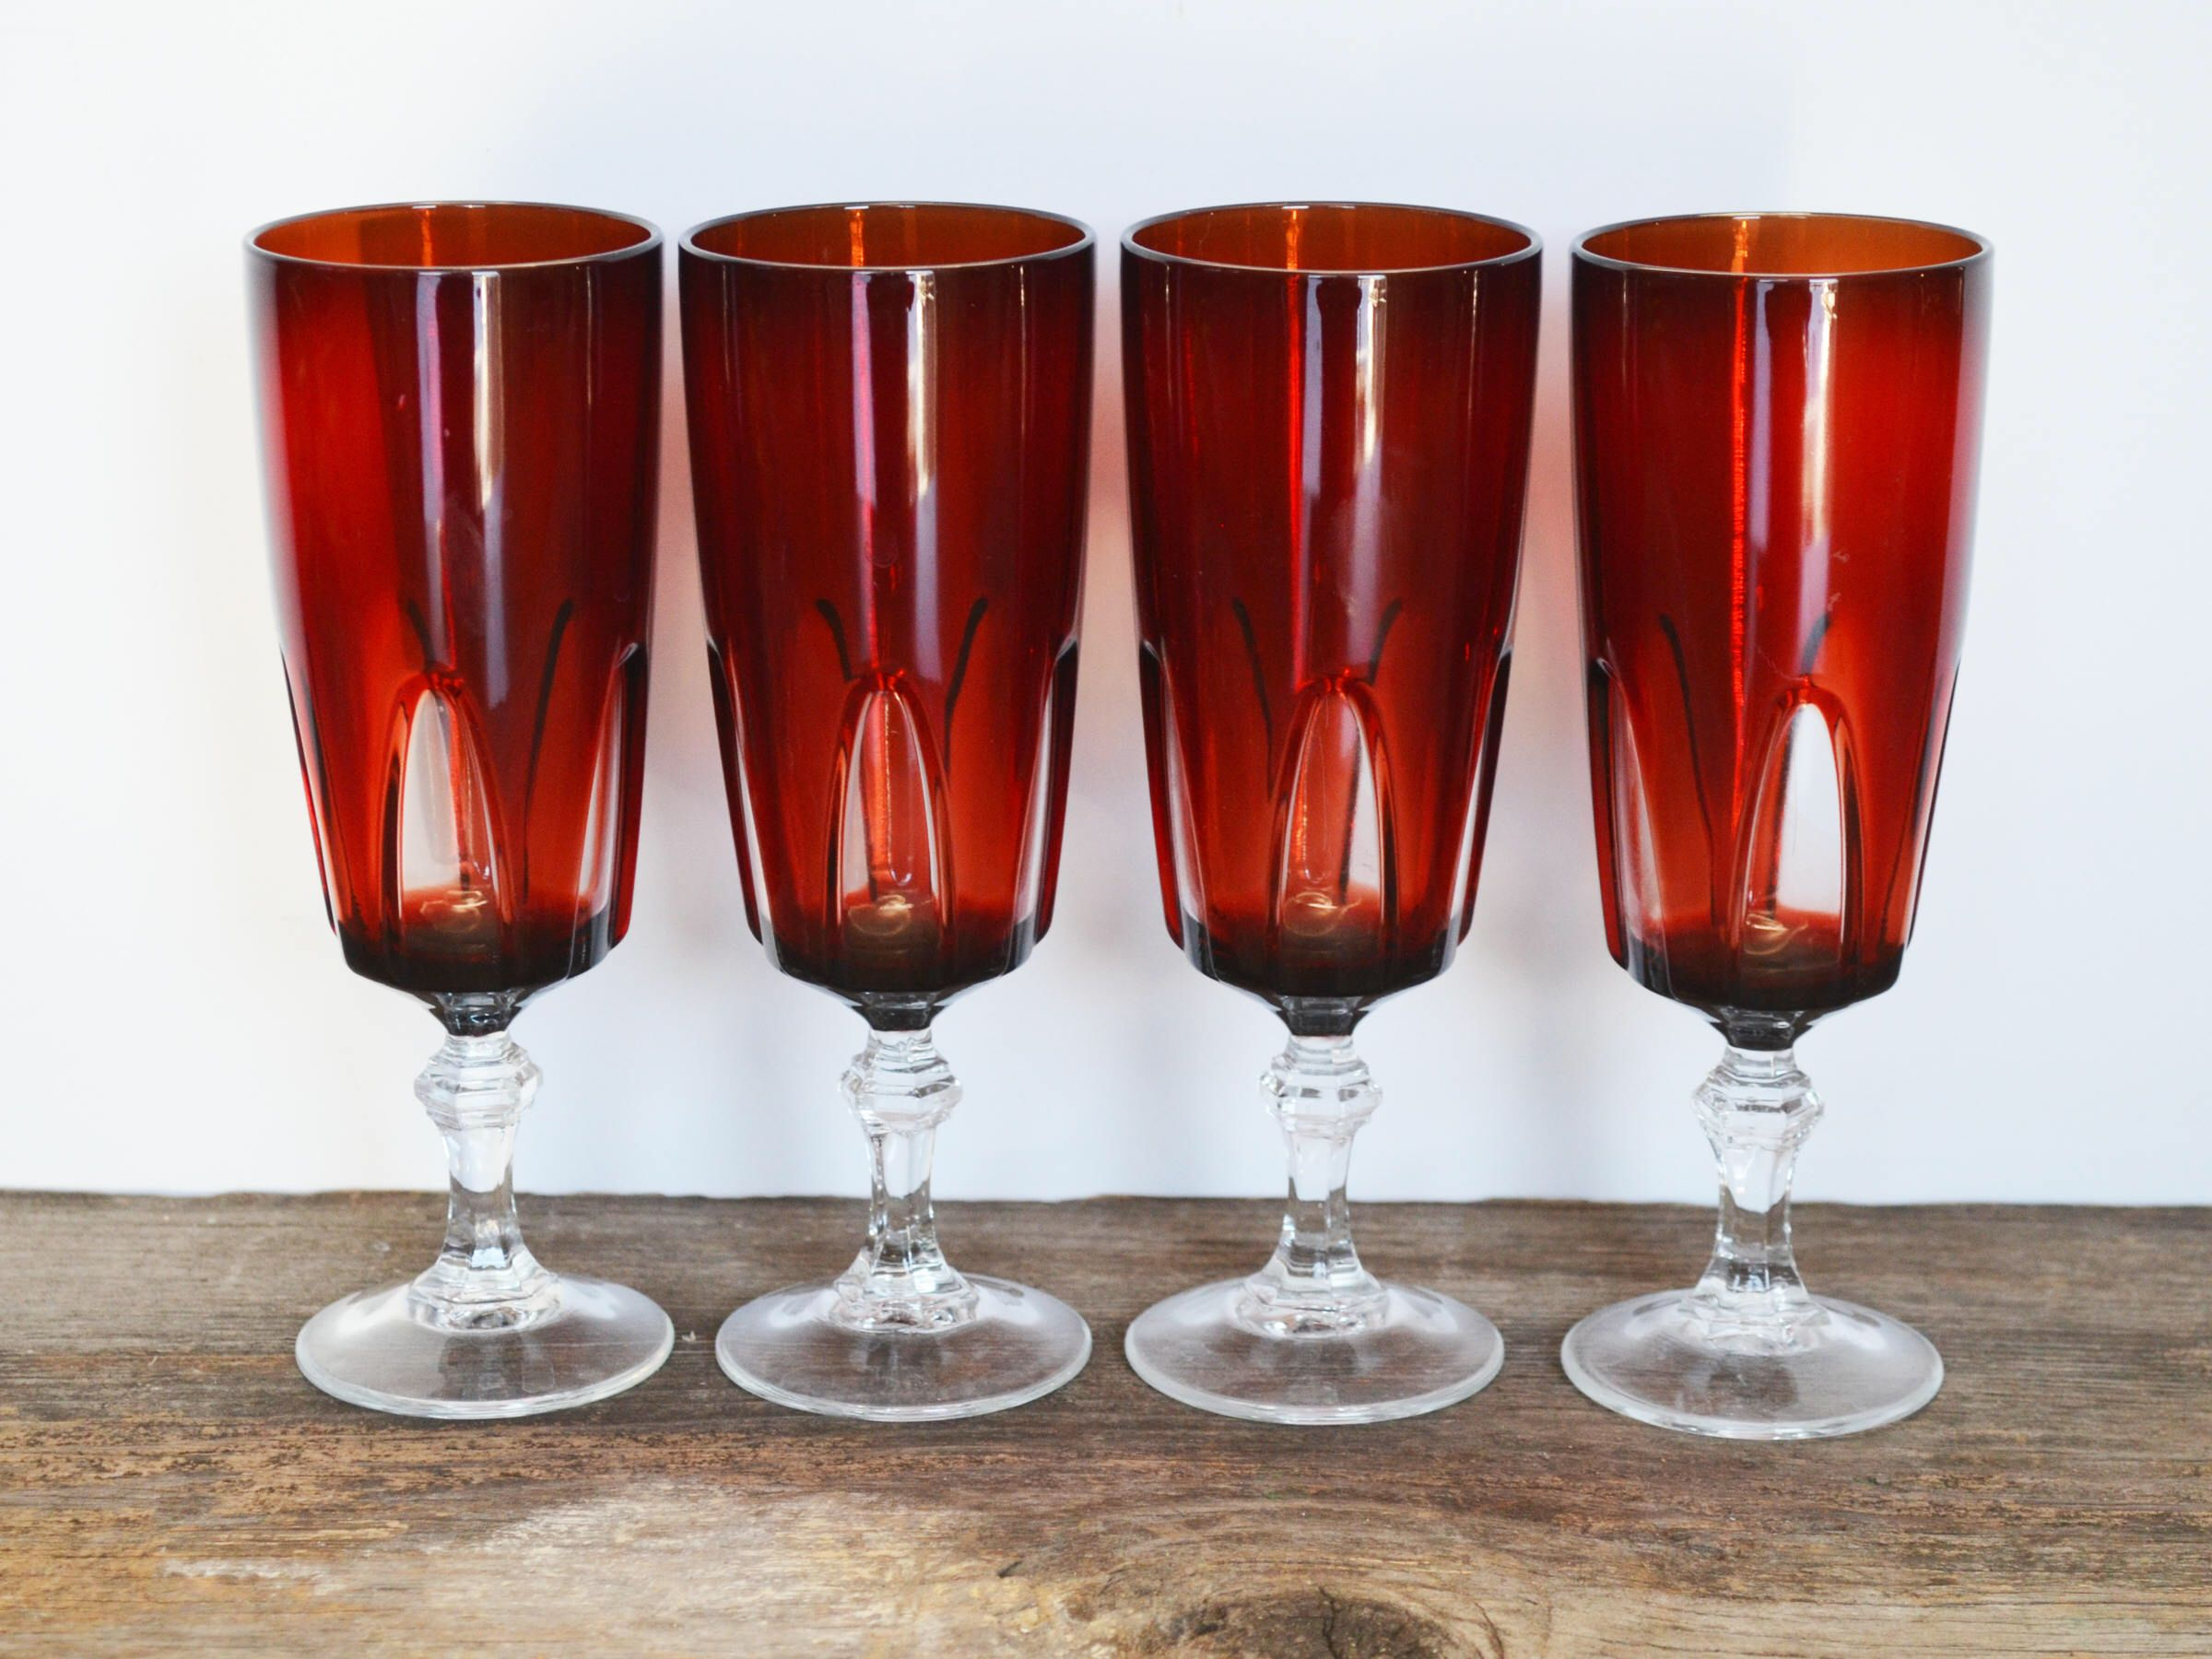 Vintage Luminarc Arcoroc Cristal D Arques Ruby Red Gothic Champagne Glasses From France Set Of 4 By Trashtiques On Etsy Luminarc Red Gothic Champagne Glasses